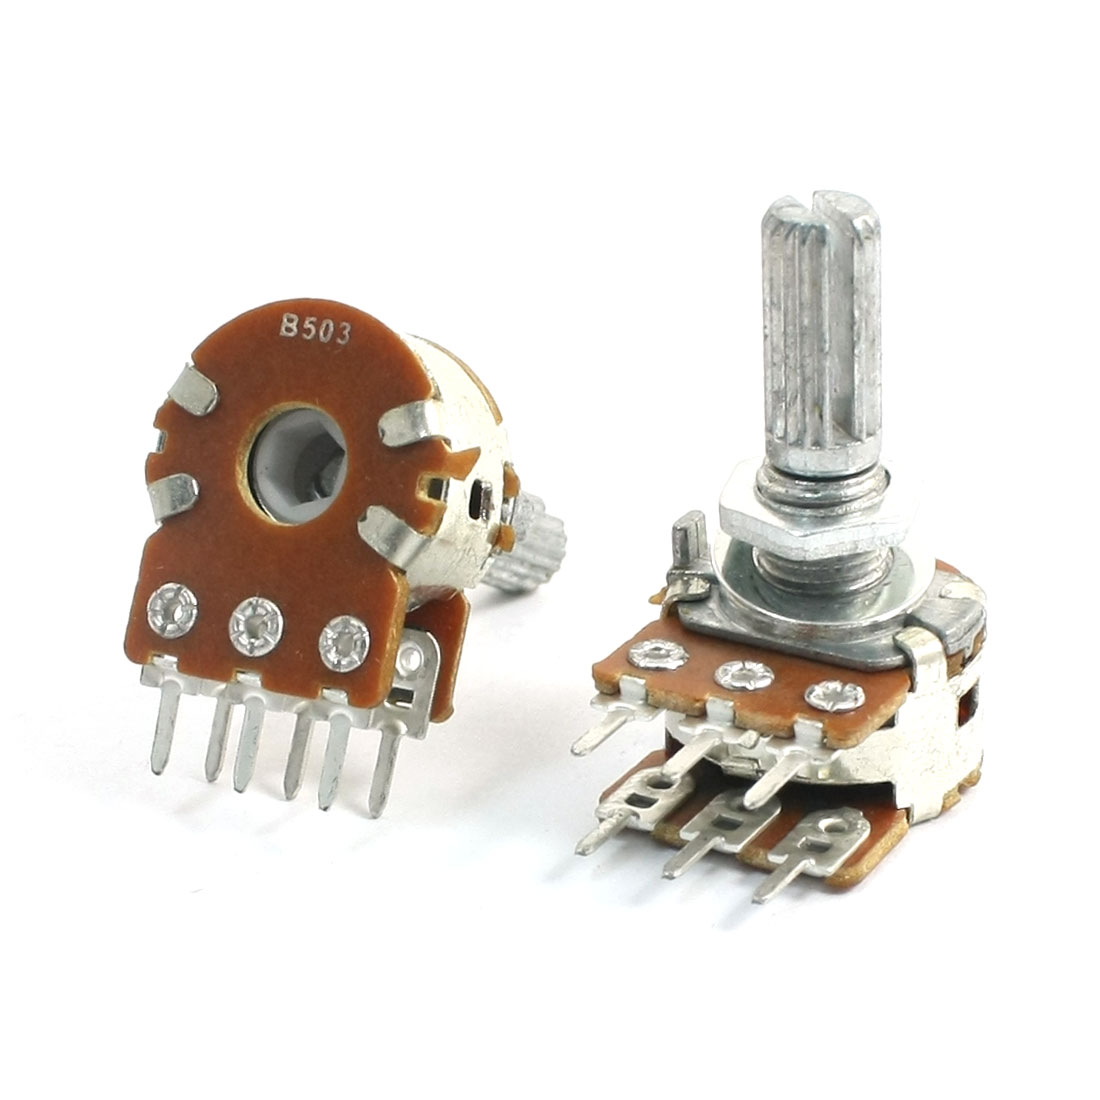 2Pcs B503 50K Ohm Adjustable 13mm Shaft PCB Mounted Linear Dual Potentiometer